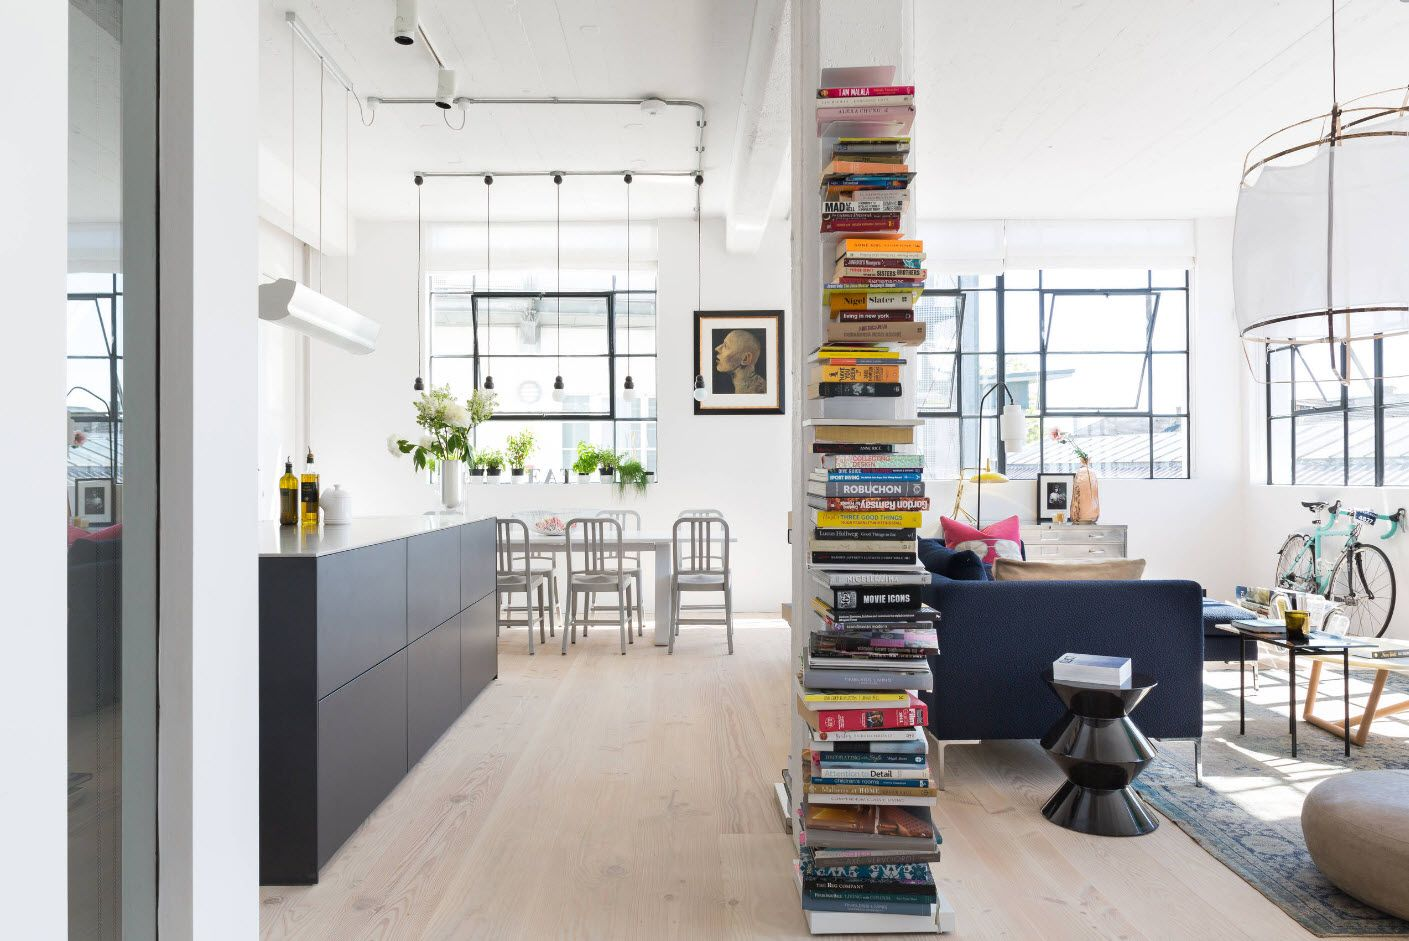 Gorgeous design solution of the studio apartment to store books